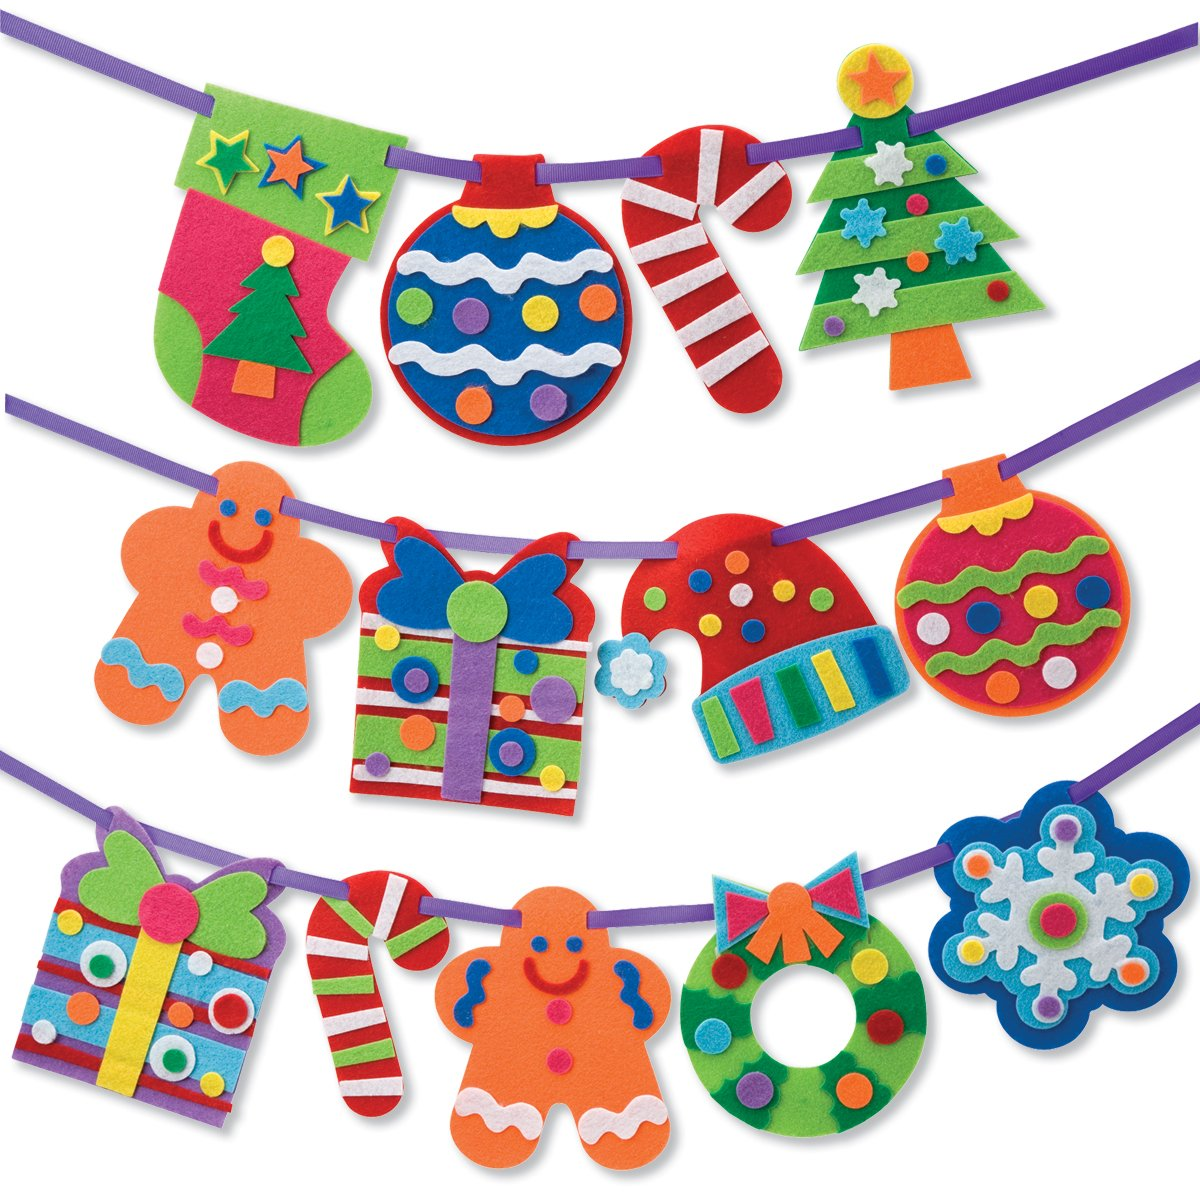 Gingerbread man christmas wreath candy cane gifts stockings